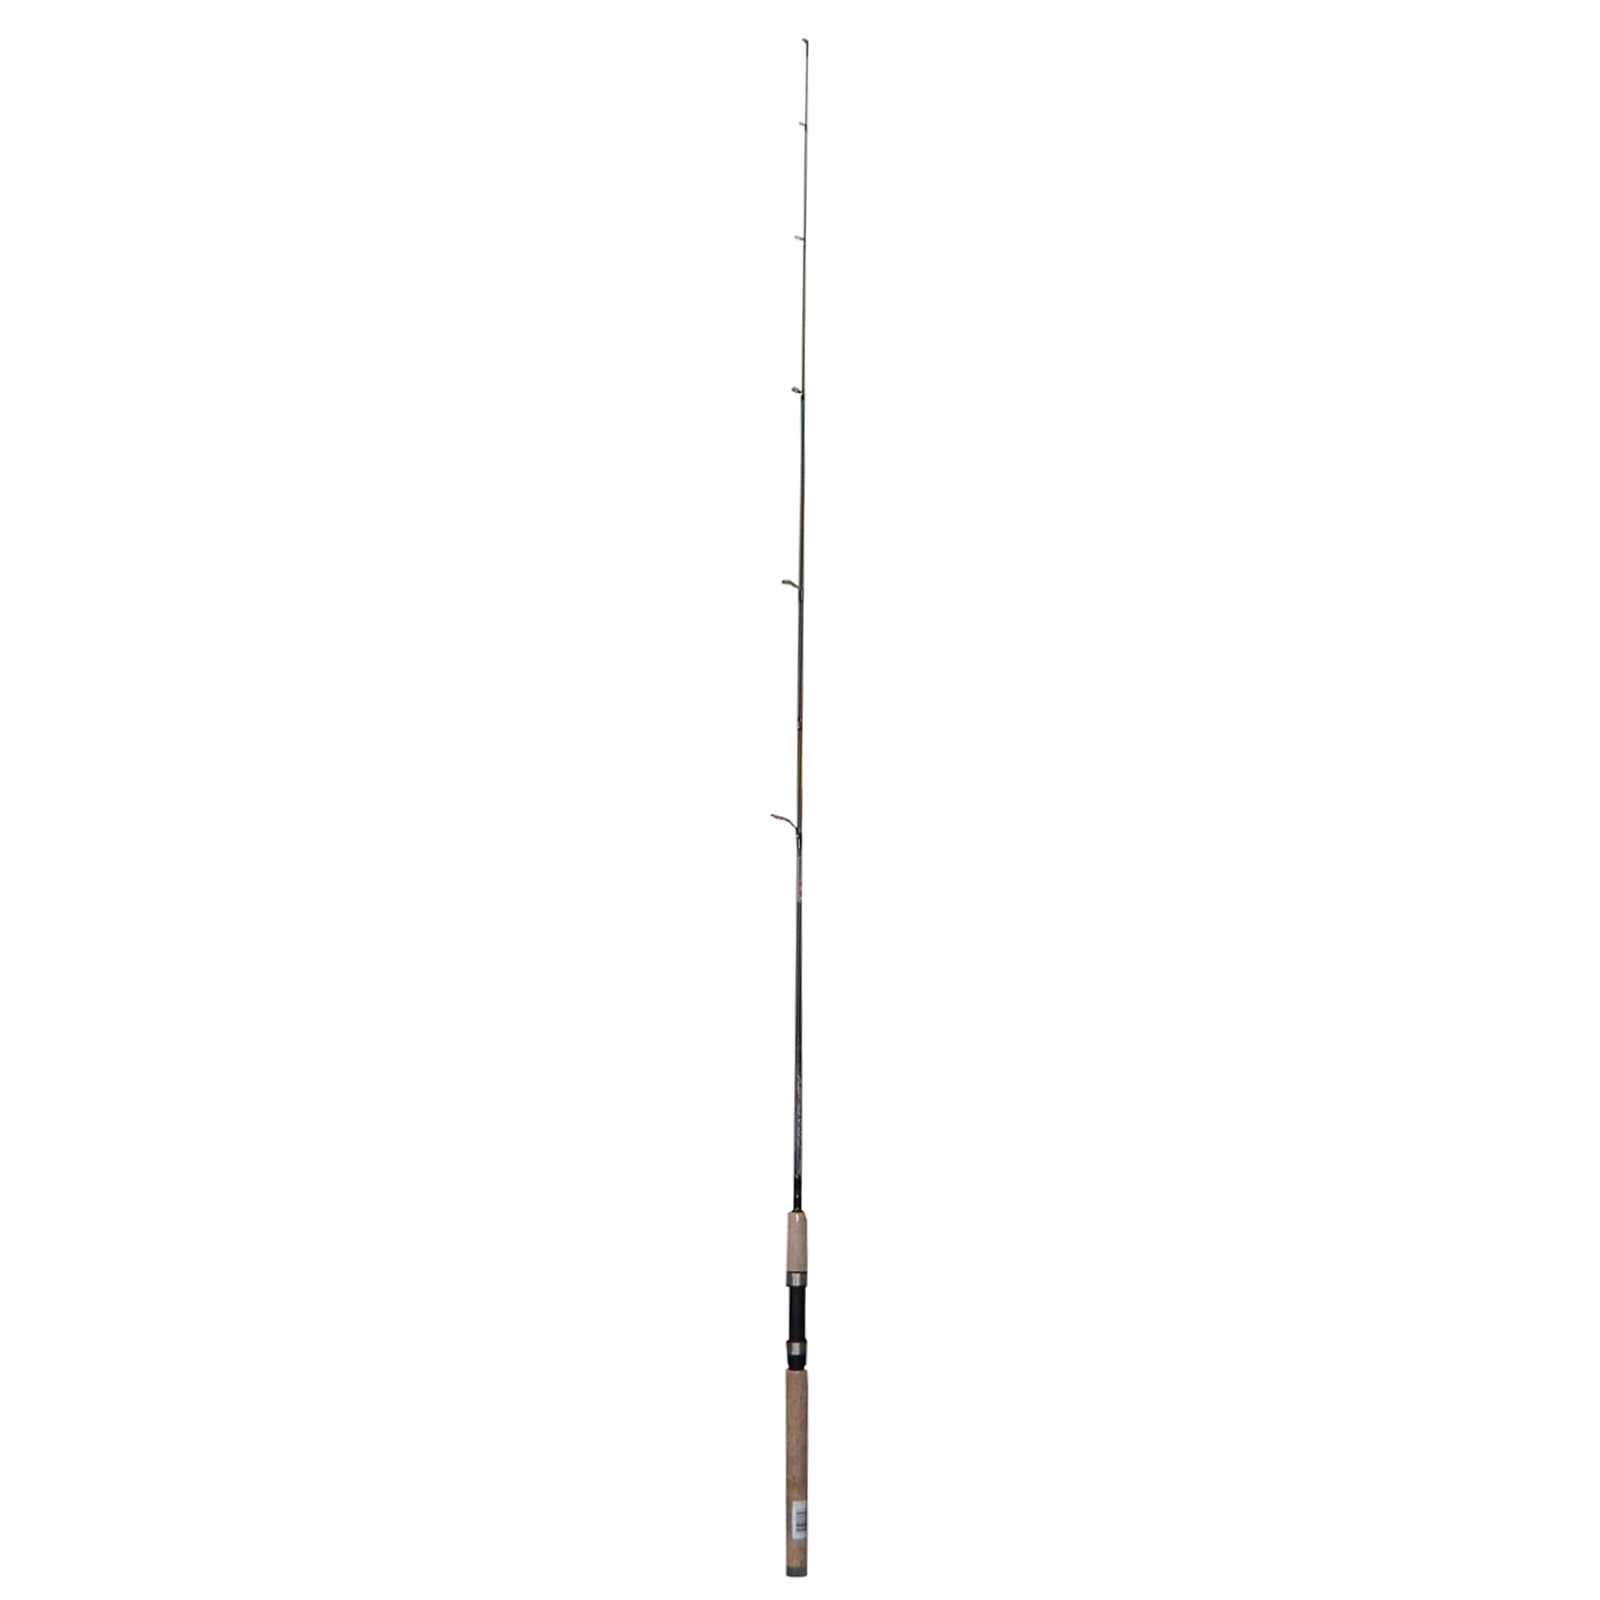 Zebco quantum graphex 6 39 6 2 pc spinning fishing rod for Expensive fishing rods